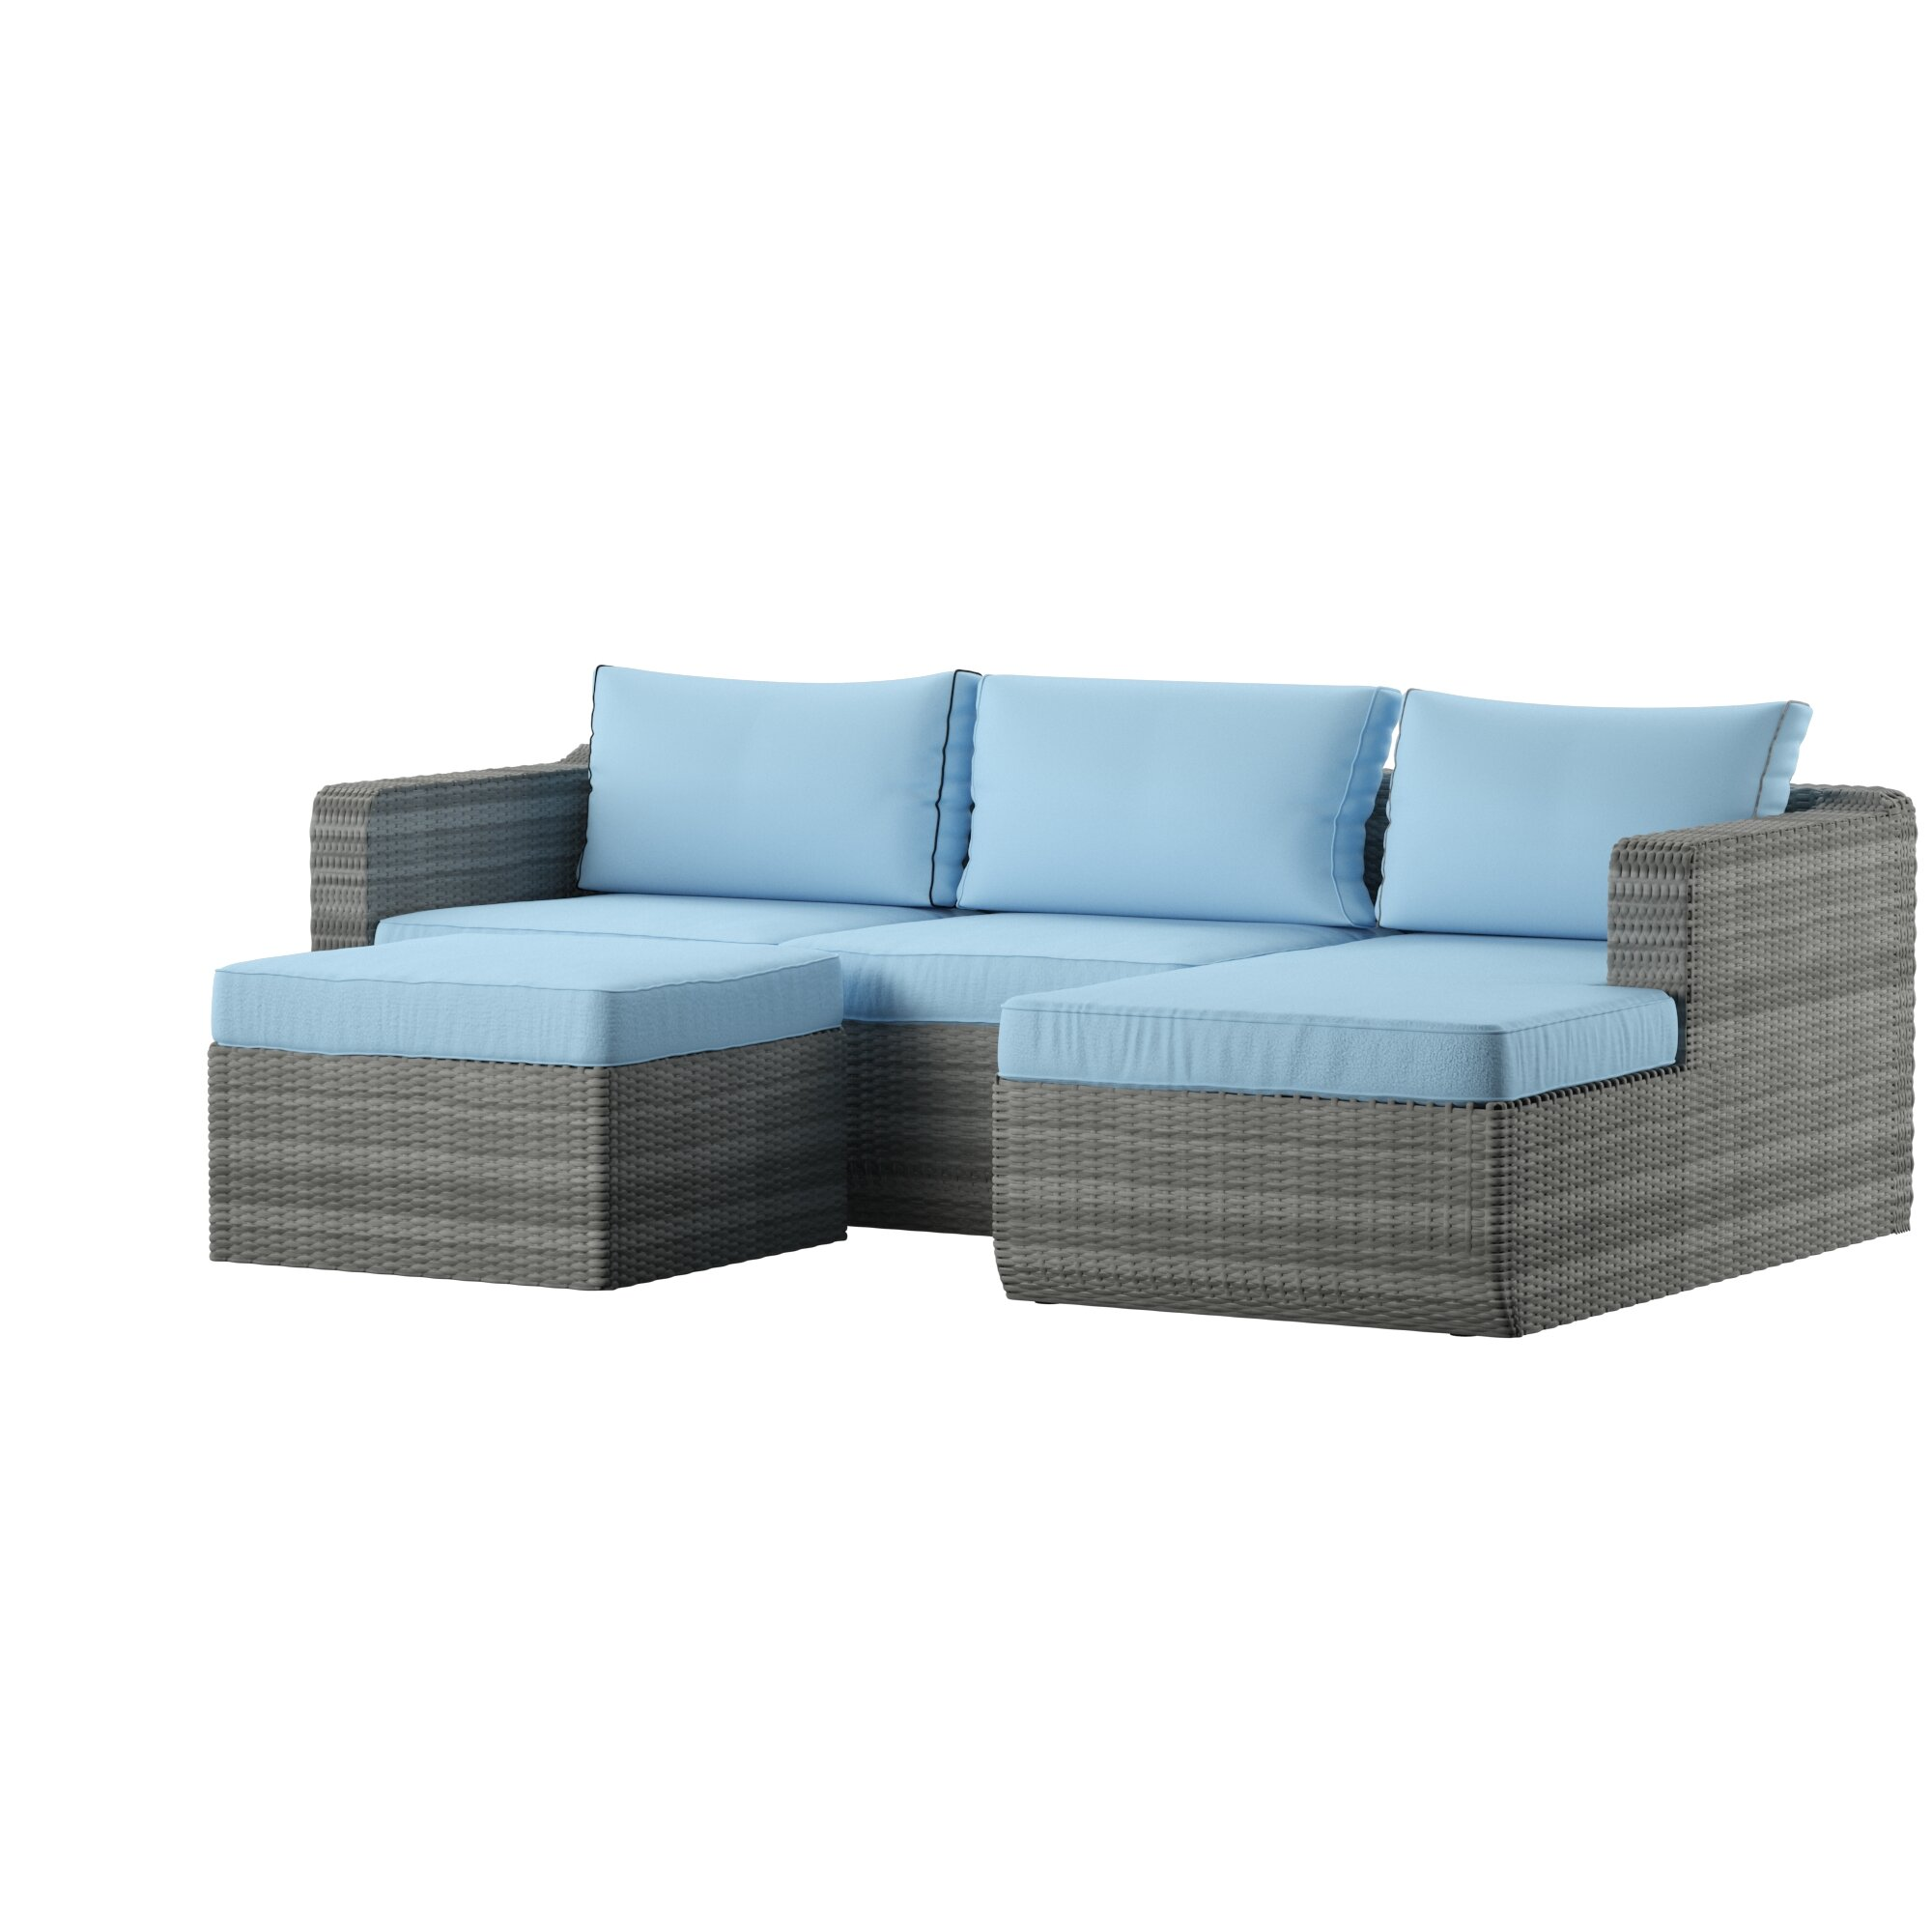 Penwell 3 Piece Sofa Seating Group with Cushions